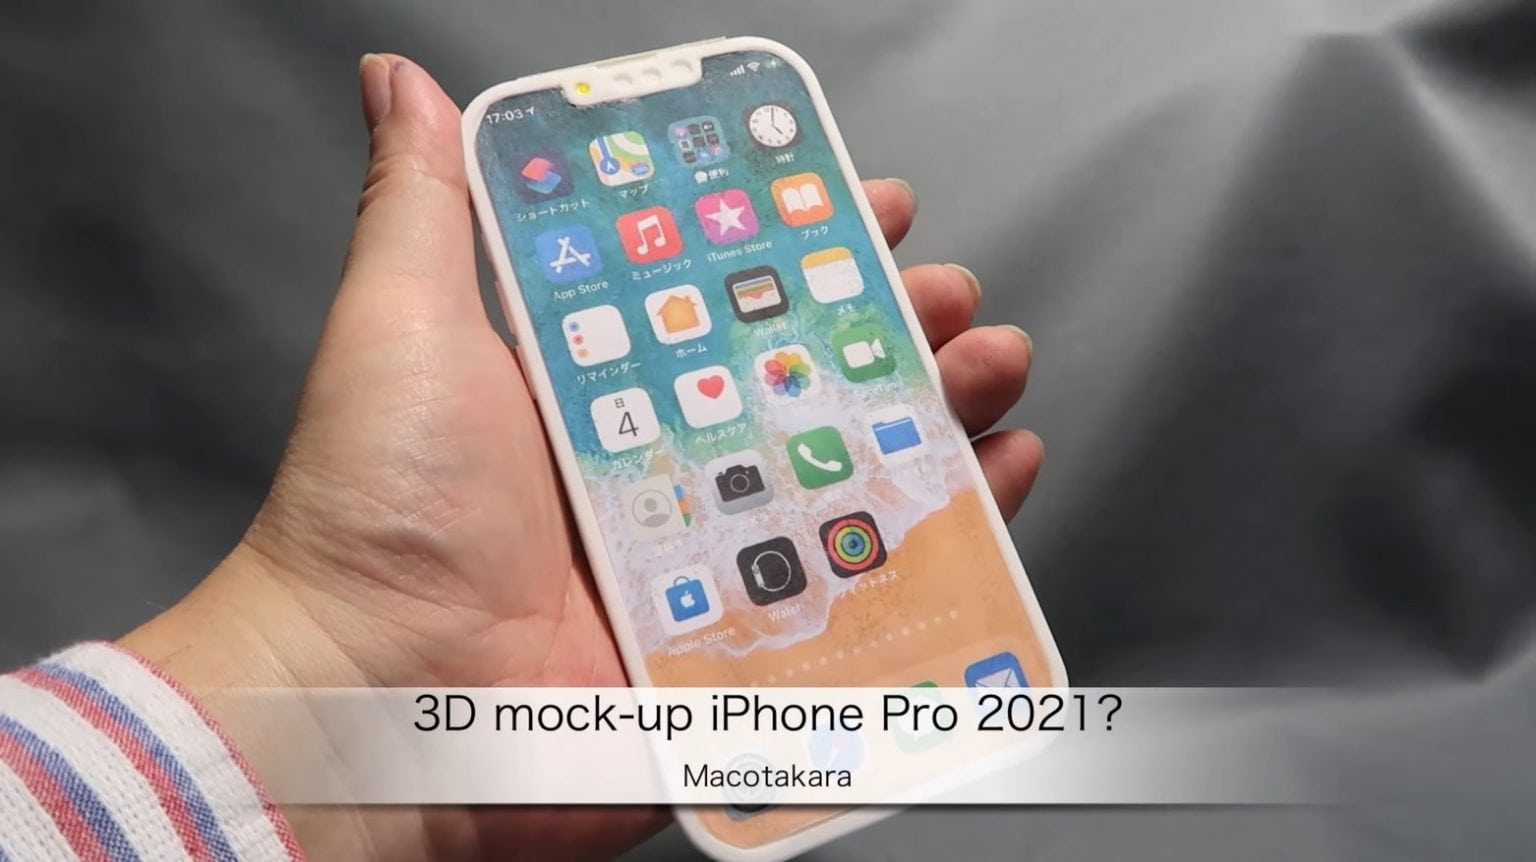 This is an iPhone 13 mockup obtained by Macotakara.